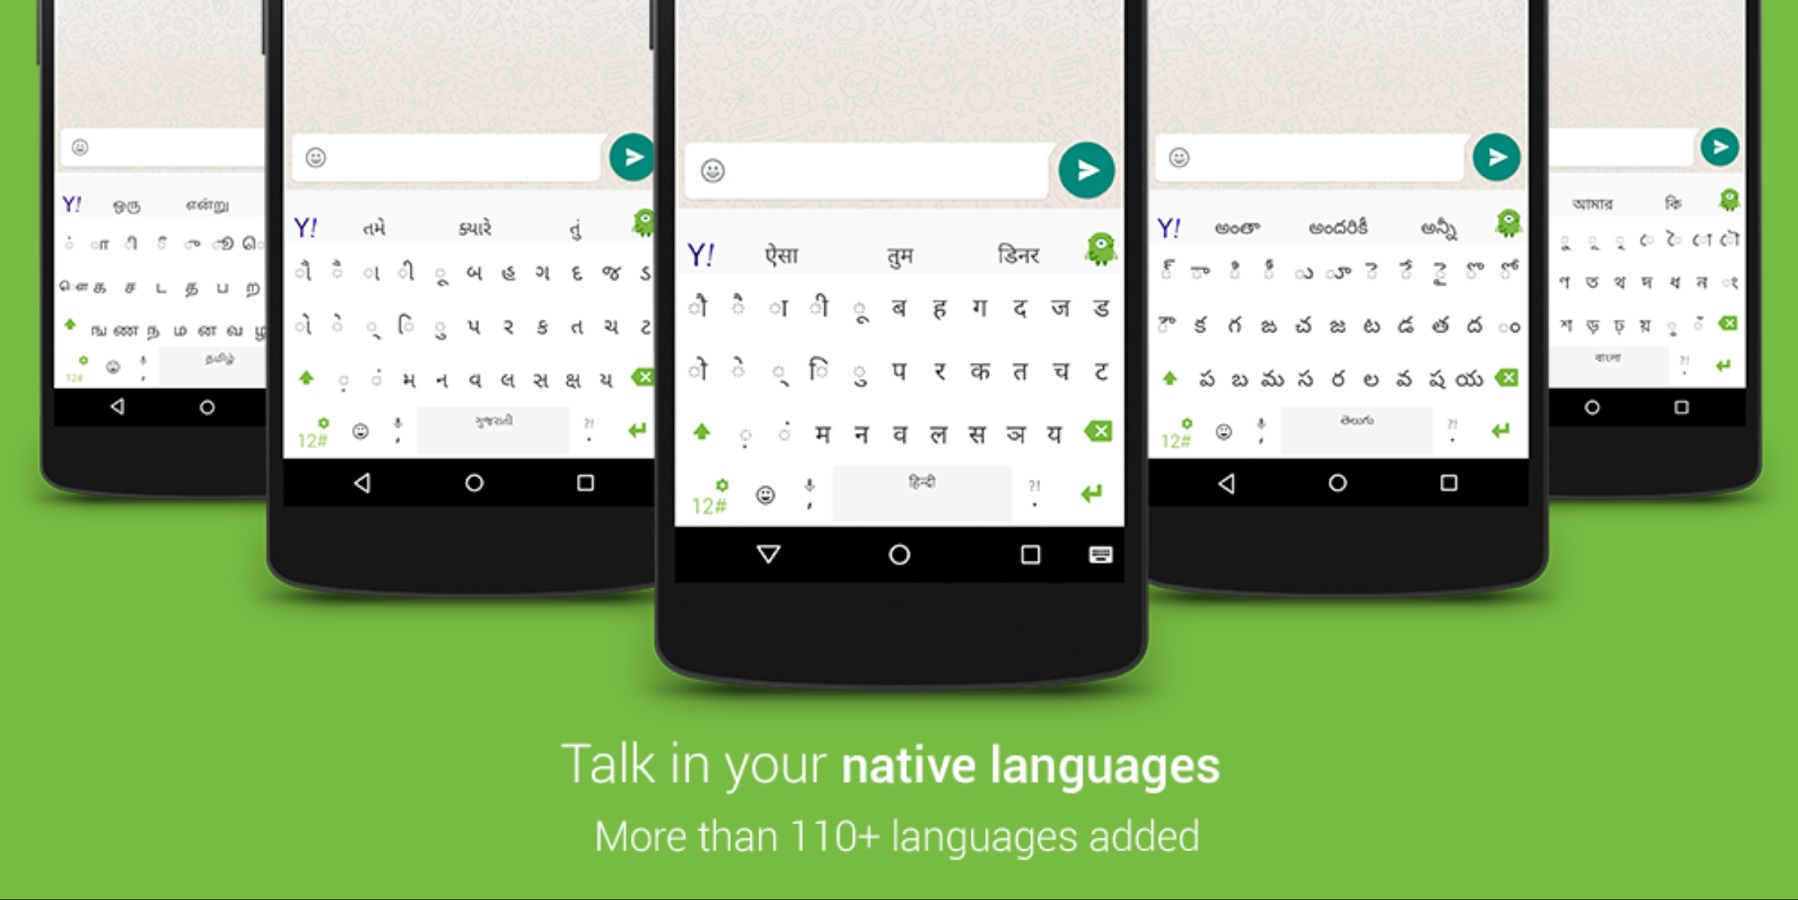 Xploree Keyboard with mutiple languages and emoji support